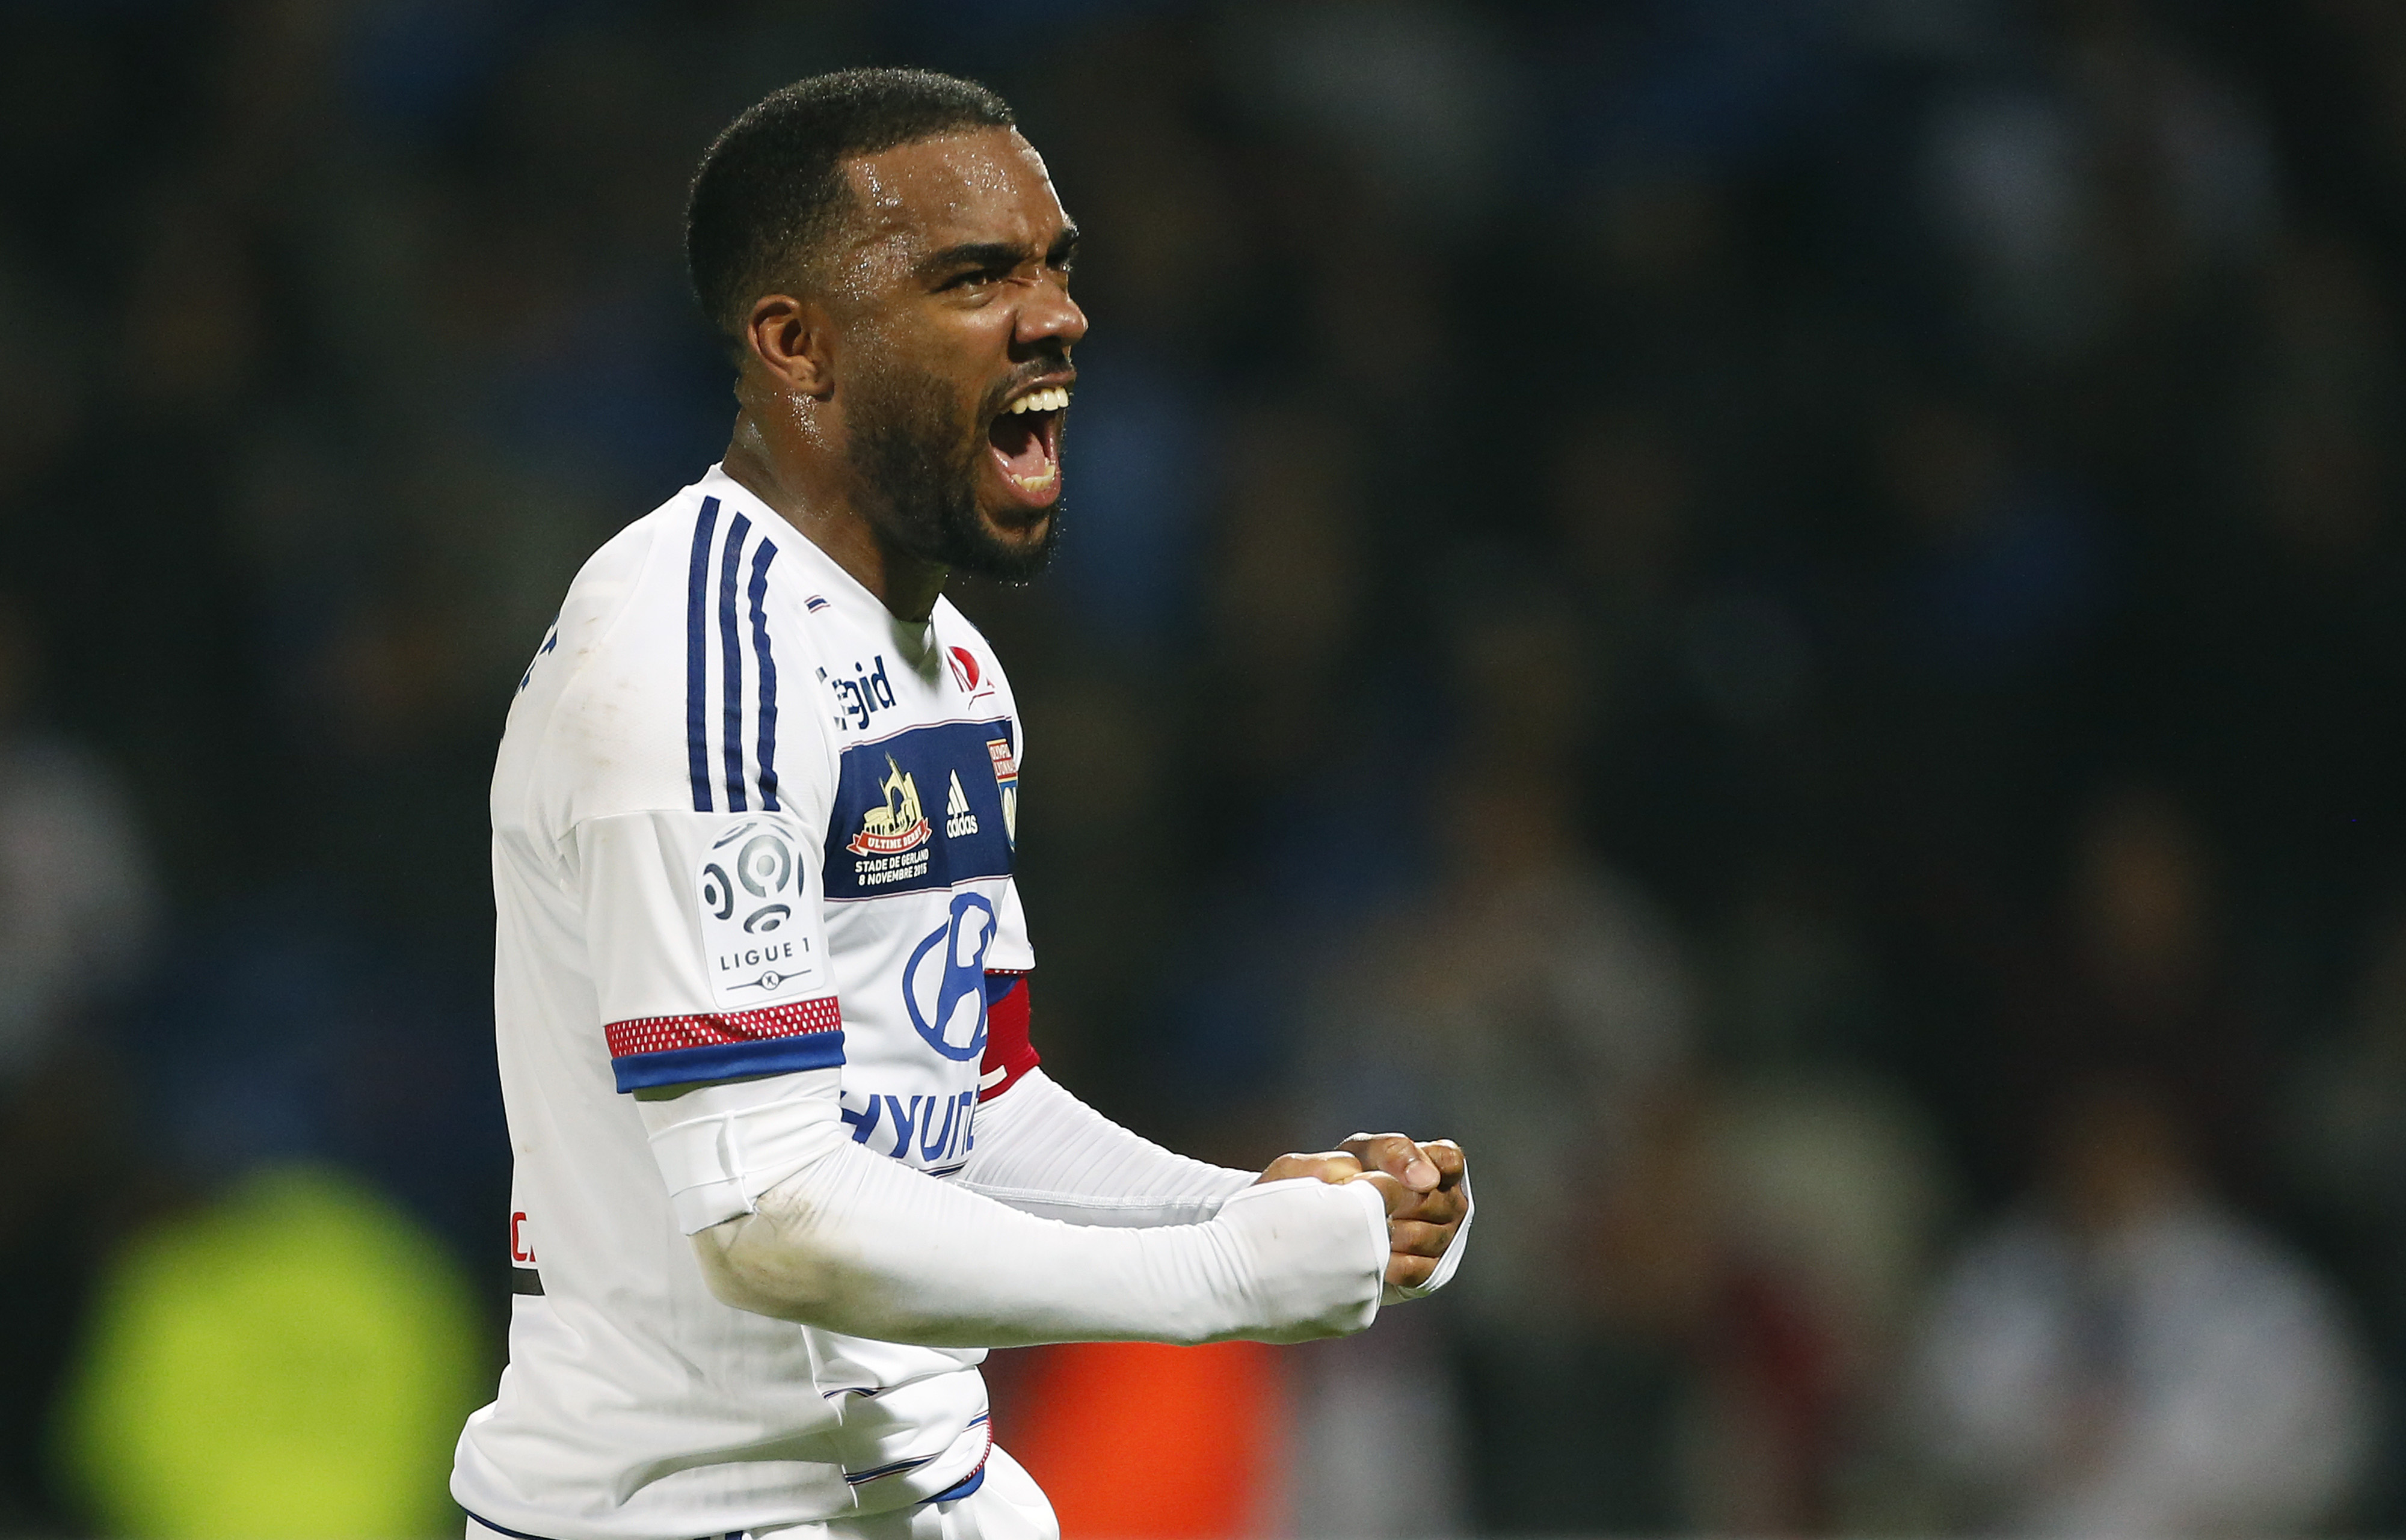 496504622-olympique-lyonnais-v-as-saint-etienne-ligue-1